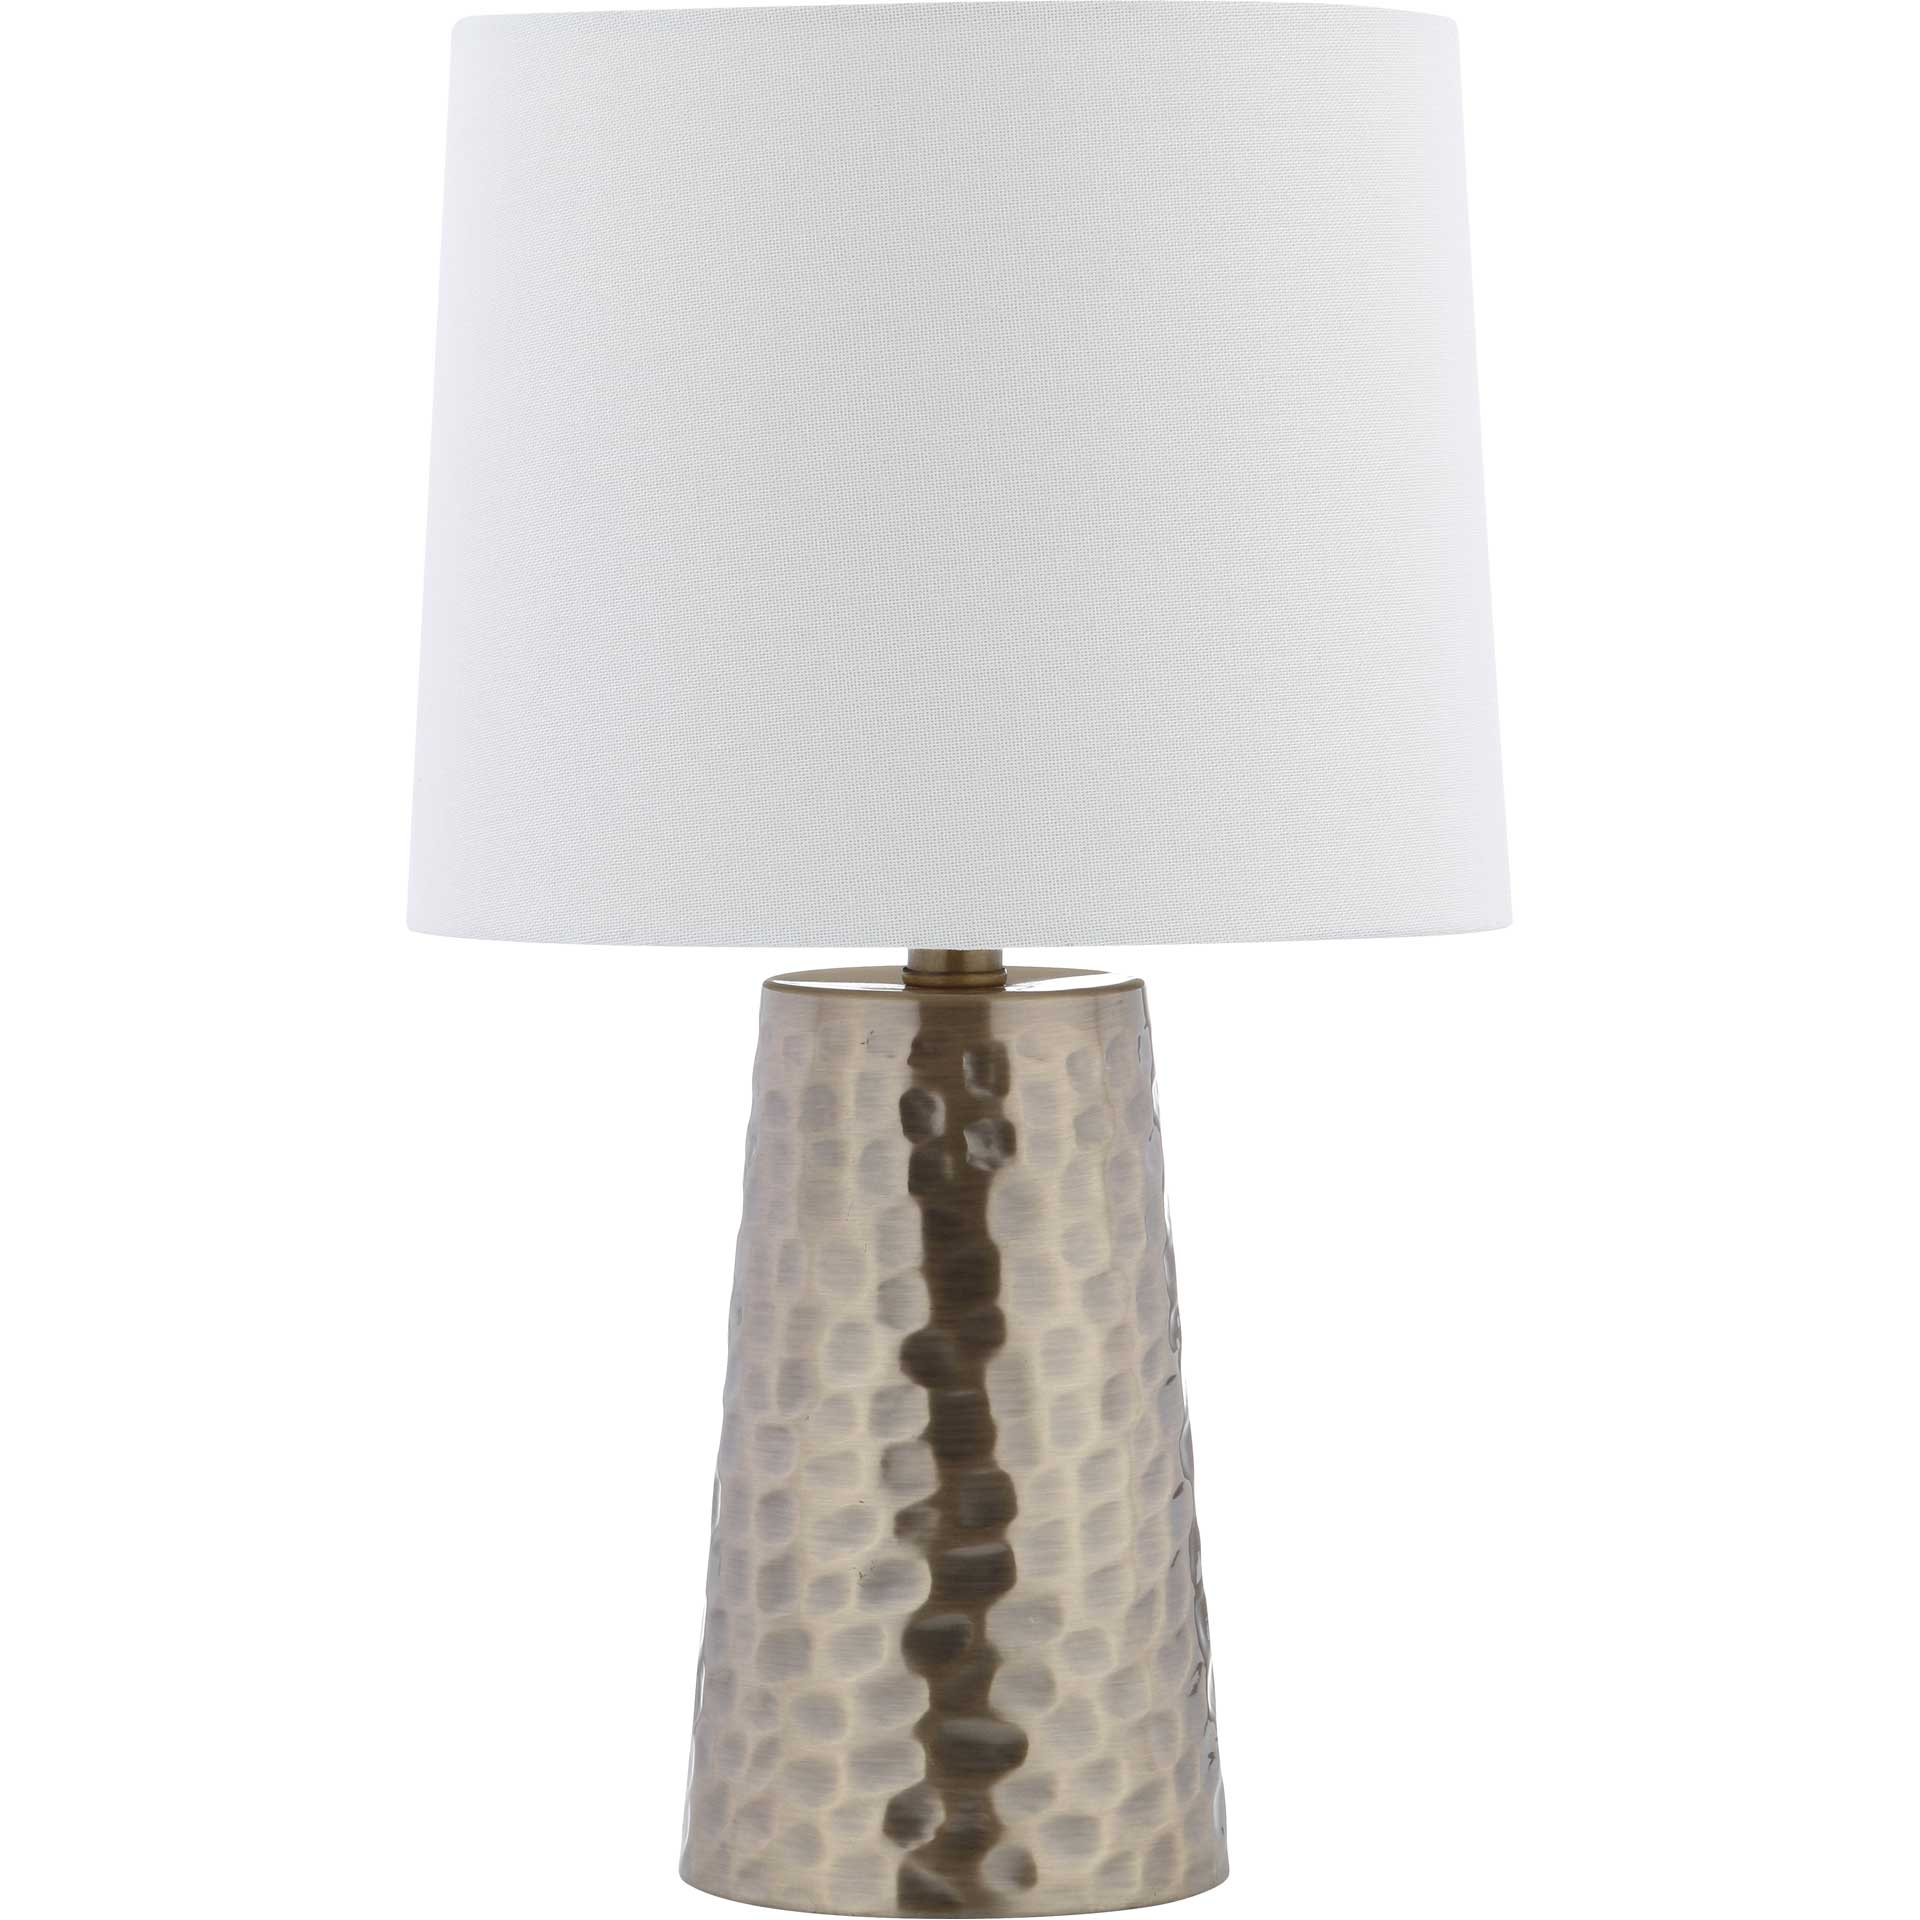 Tori Table Lamp Plated Gold